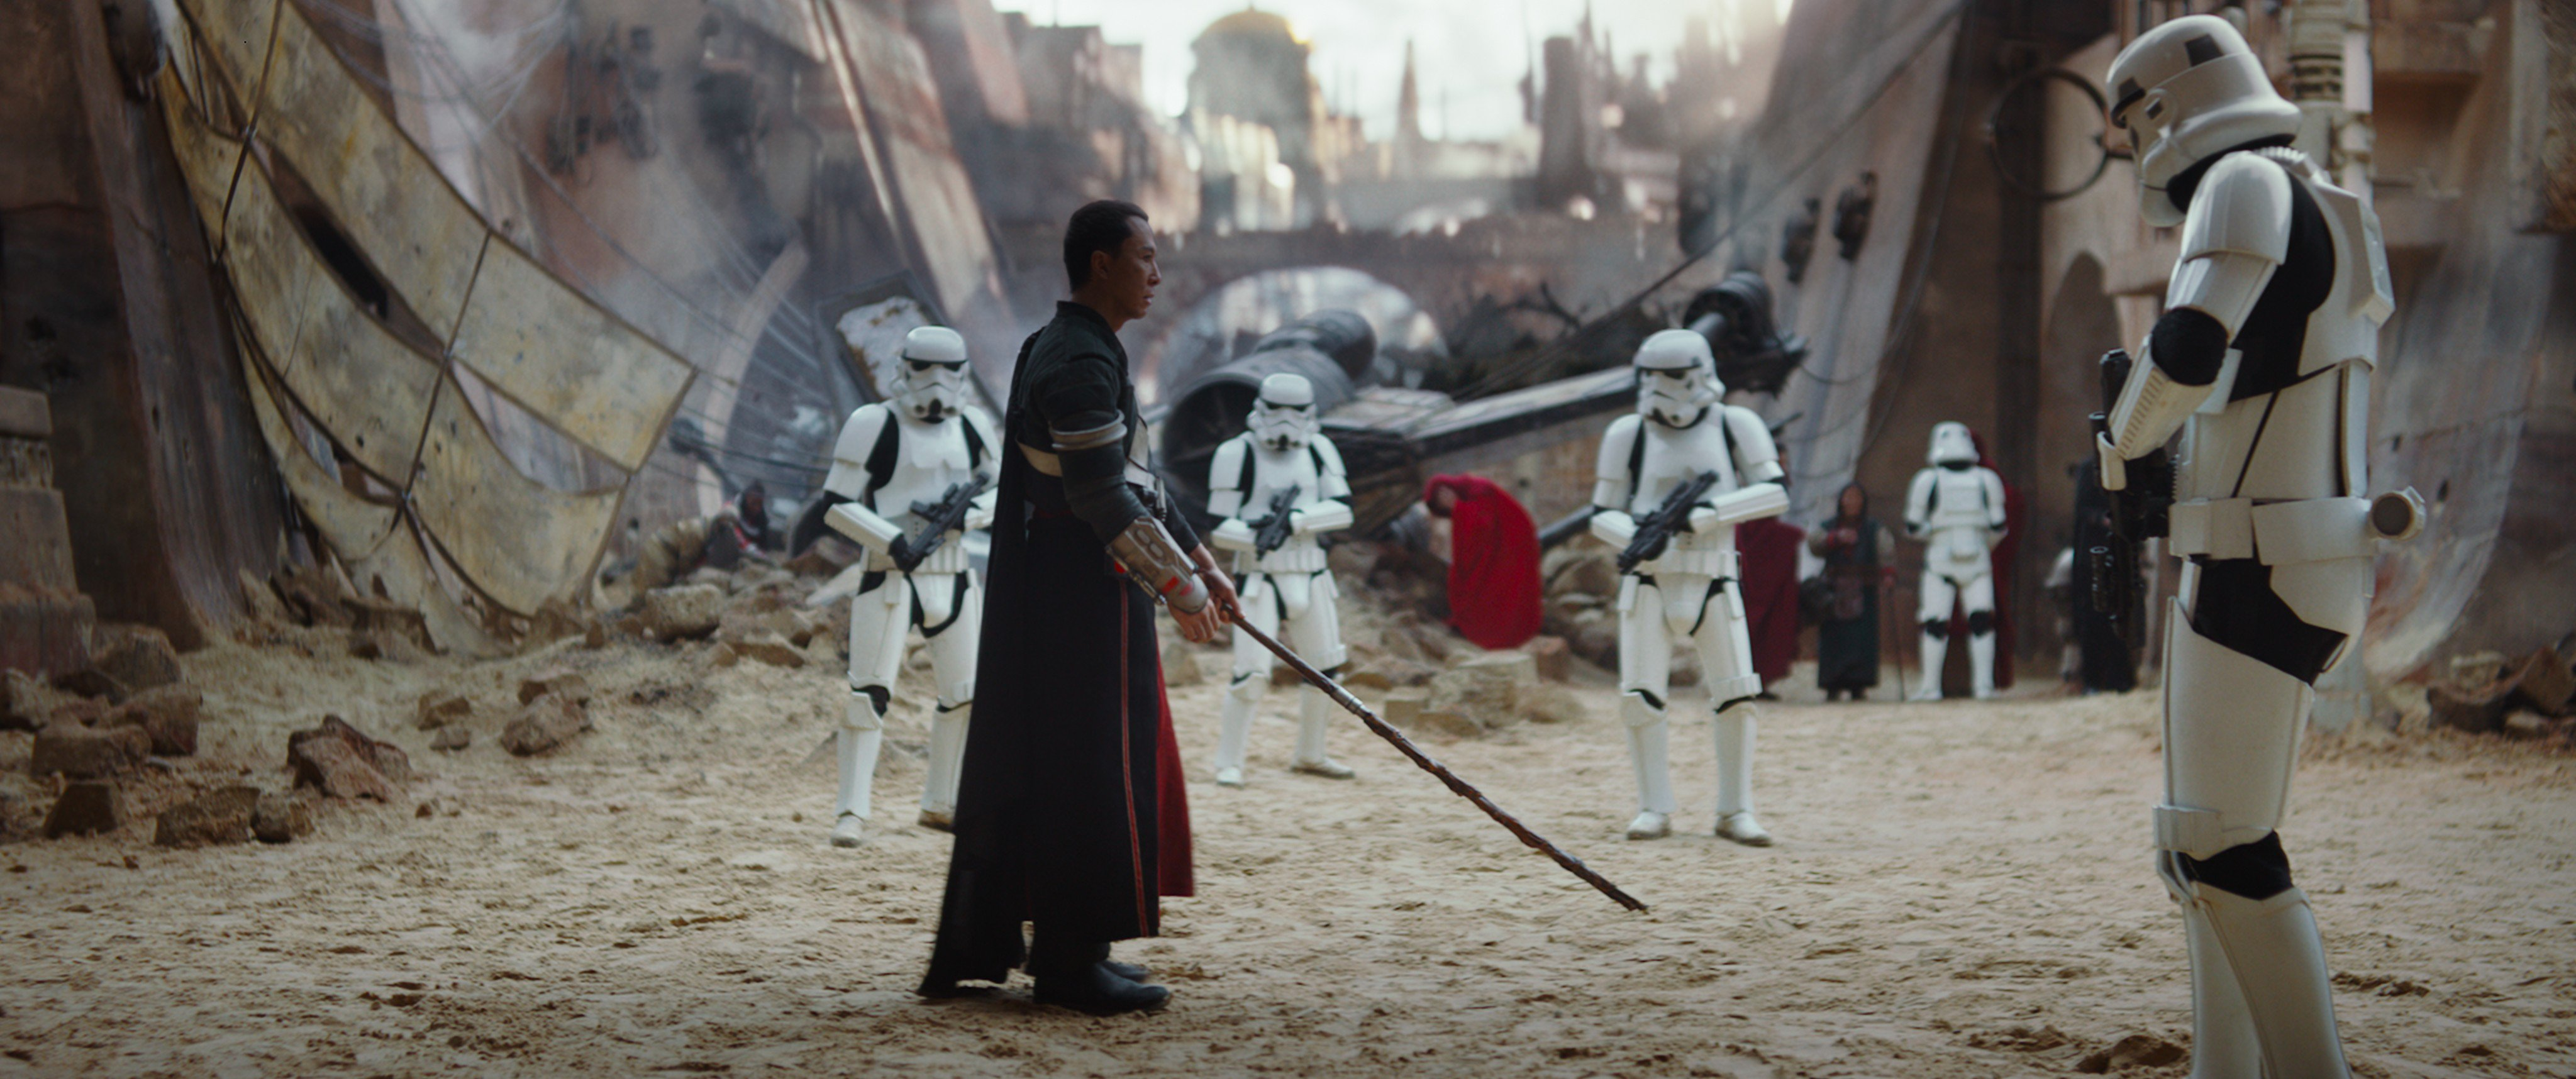 rogue one star wars movie hd movies 4k wallpapers